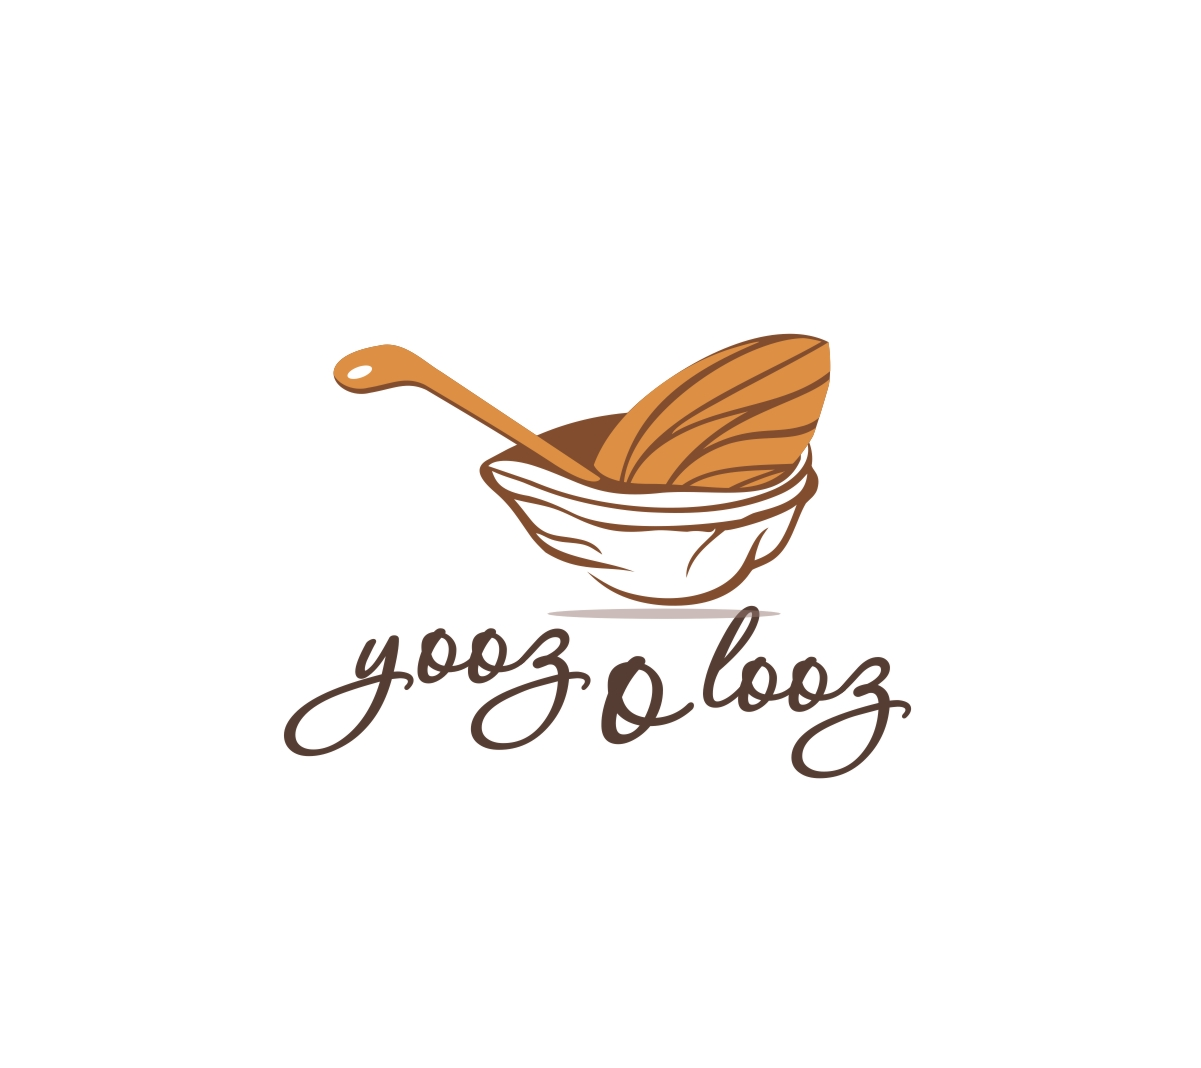 Logo Design by IDESIGNSTUDIO - Entry No. 20 in the Logo Design Contest Imaginative Logo Design for Yooz O Looz.